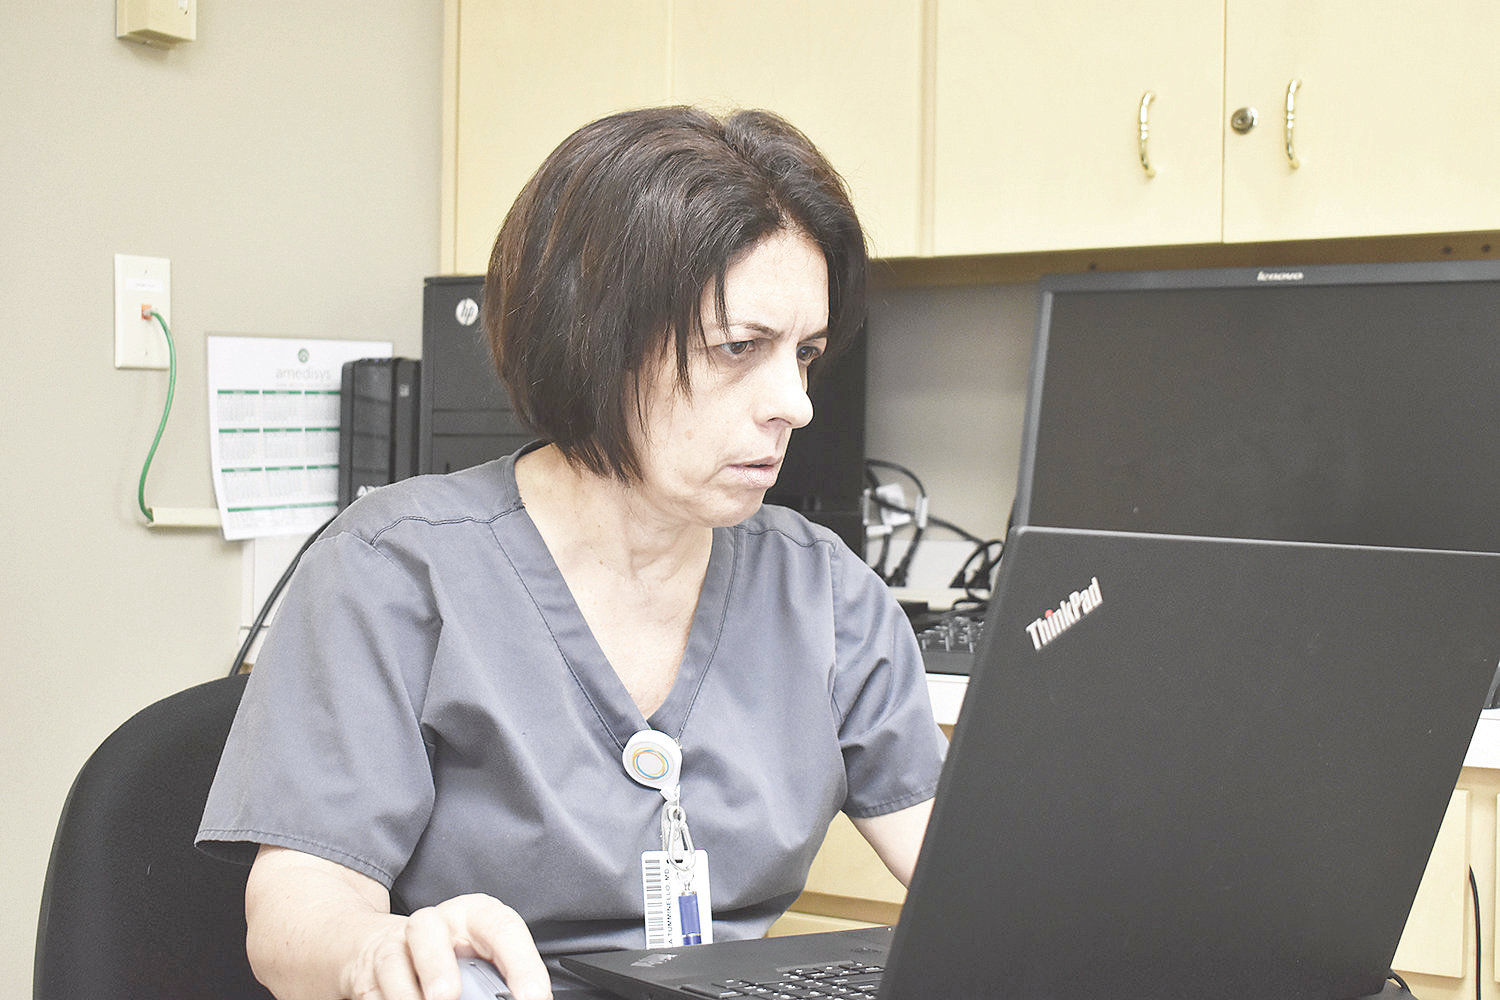 Dr. Paola Tumminello works in her office at Walker Baptist Medical Center.